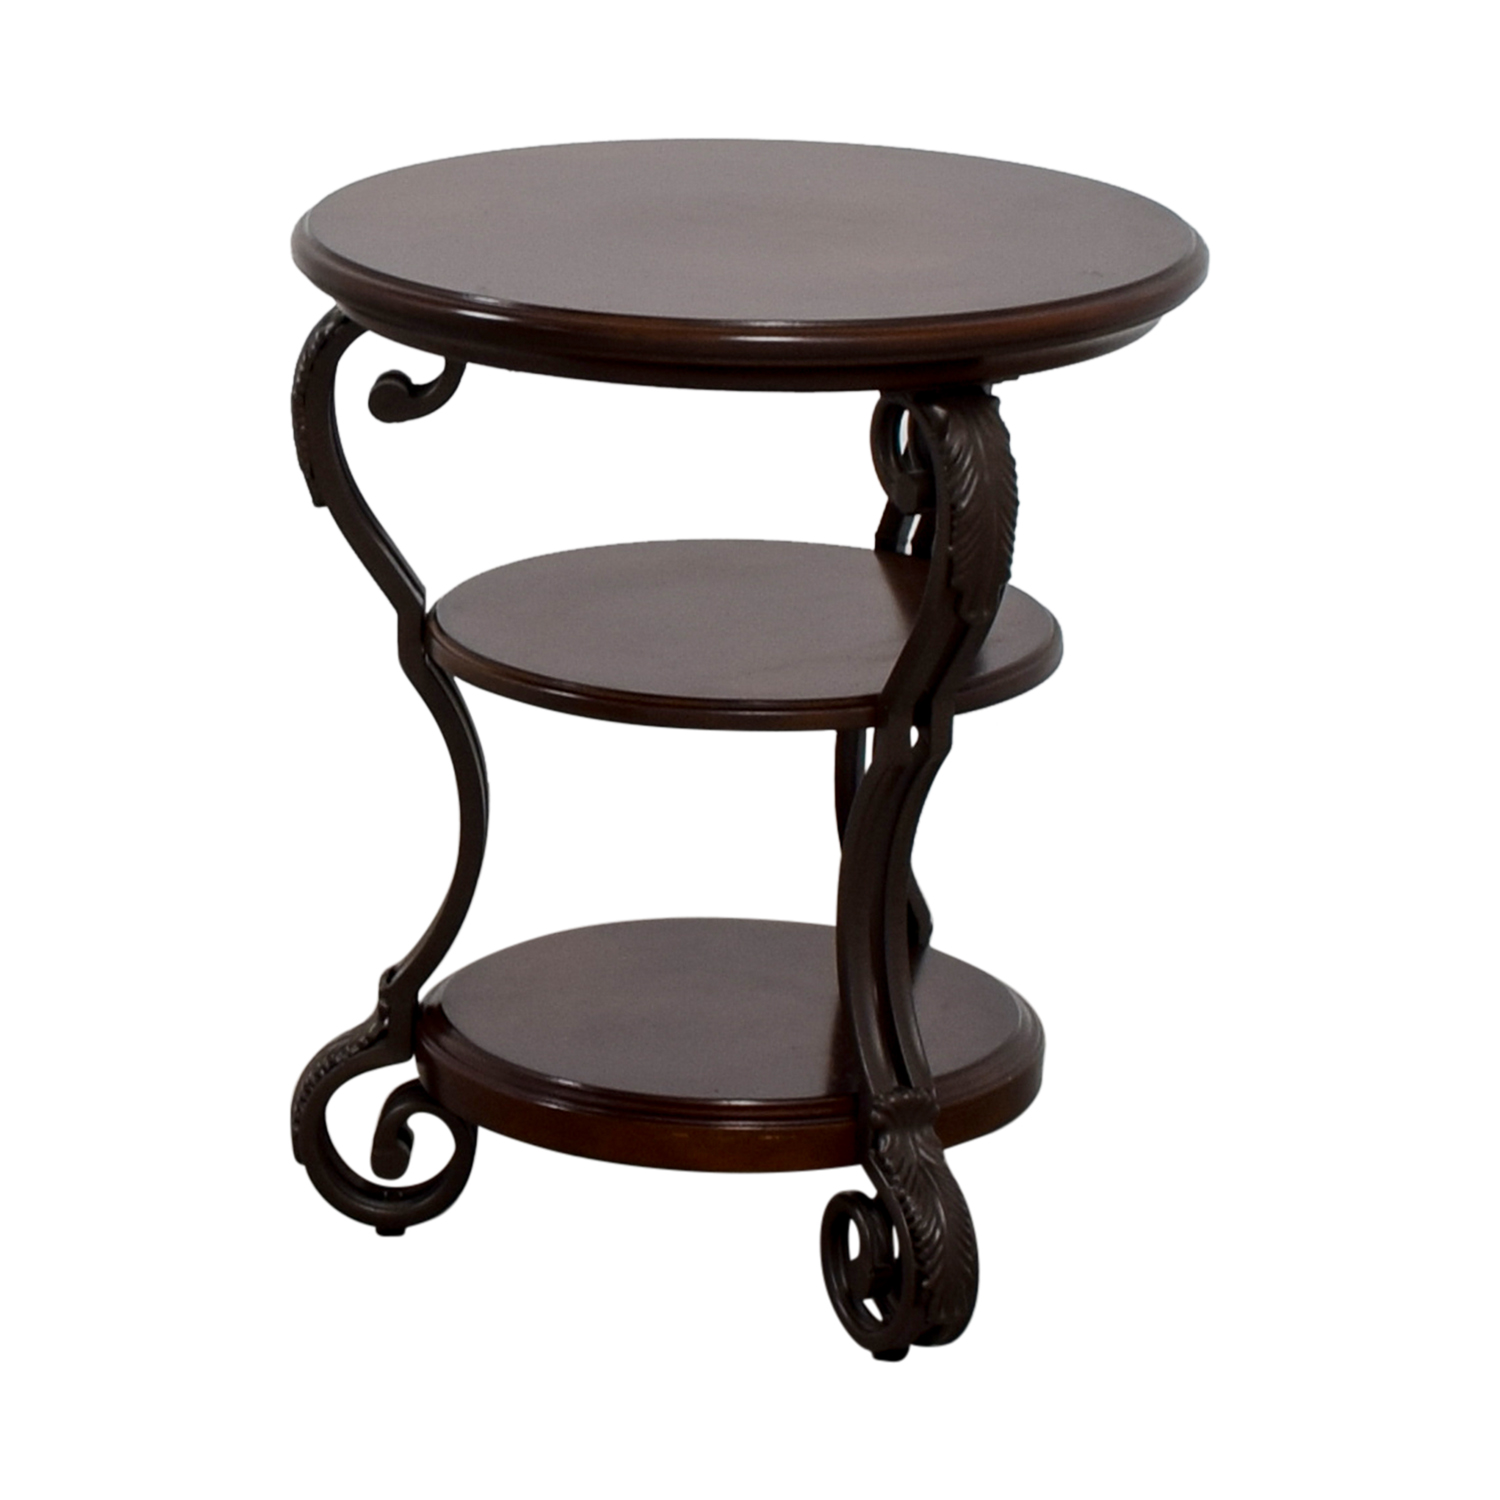 wrought iron side table with glass top probably perfect best off ashley furniture round wood end used tables nyc white cube bedside coleman queen airbed cot pole lamp oriental